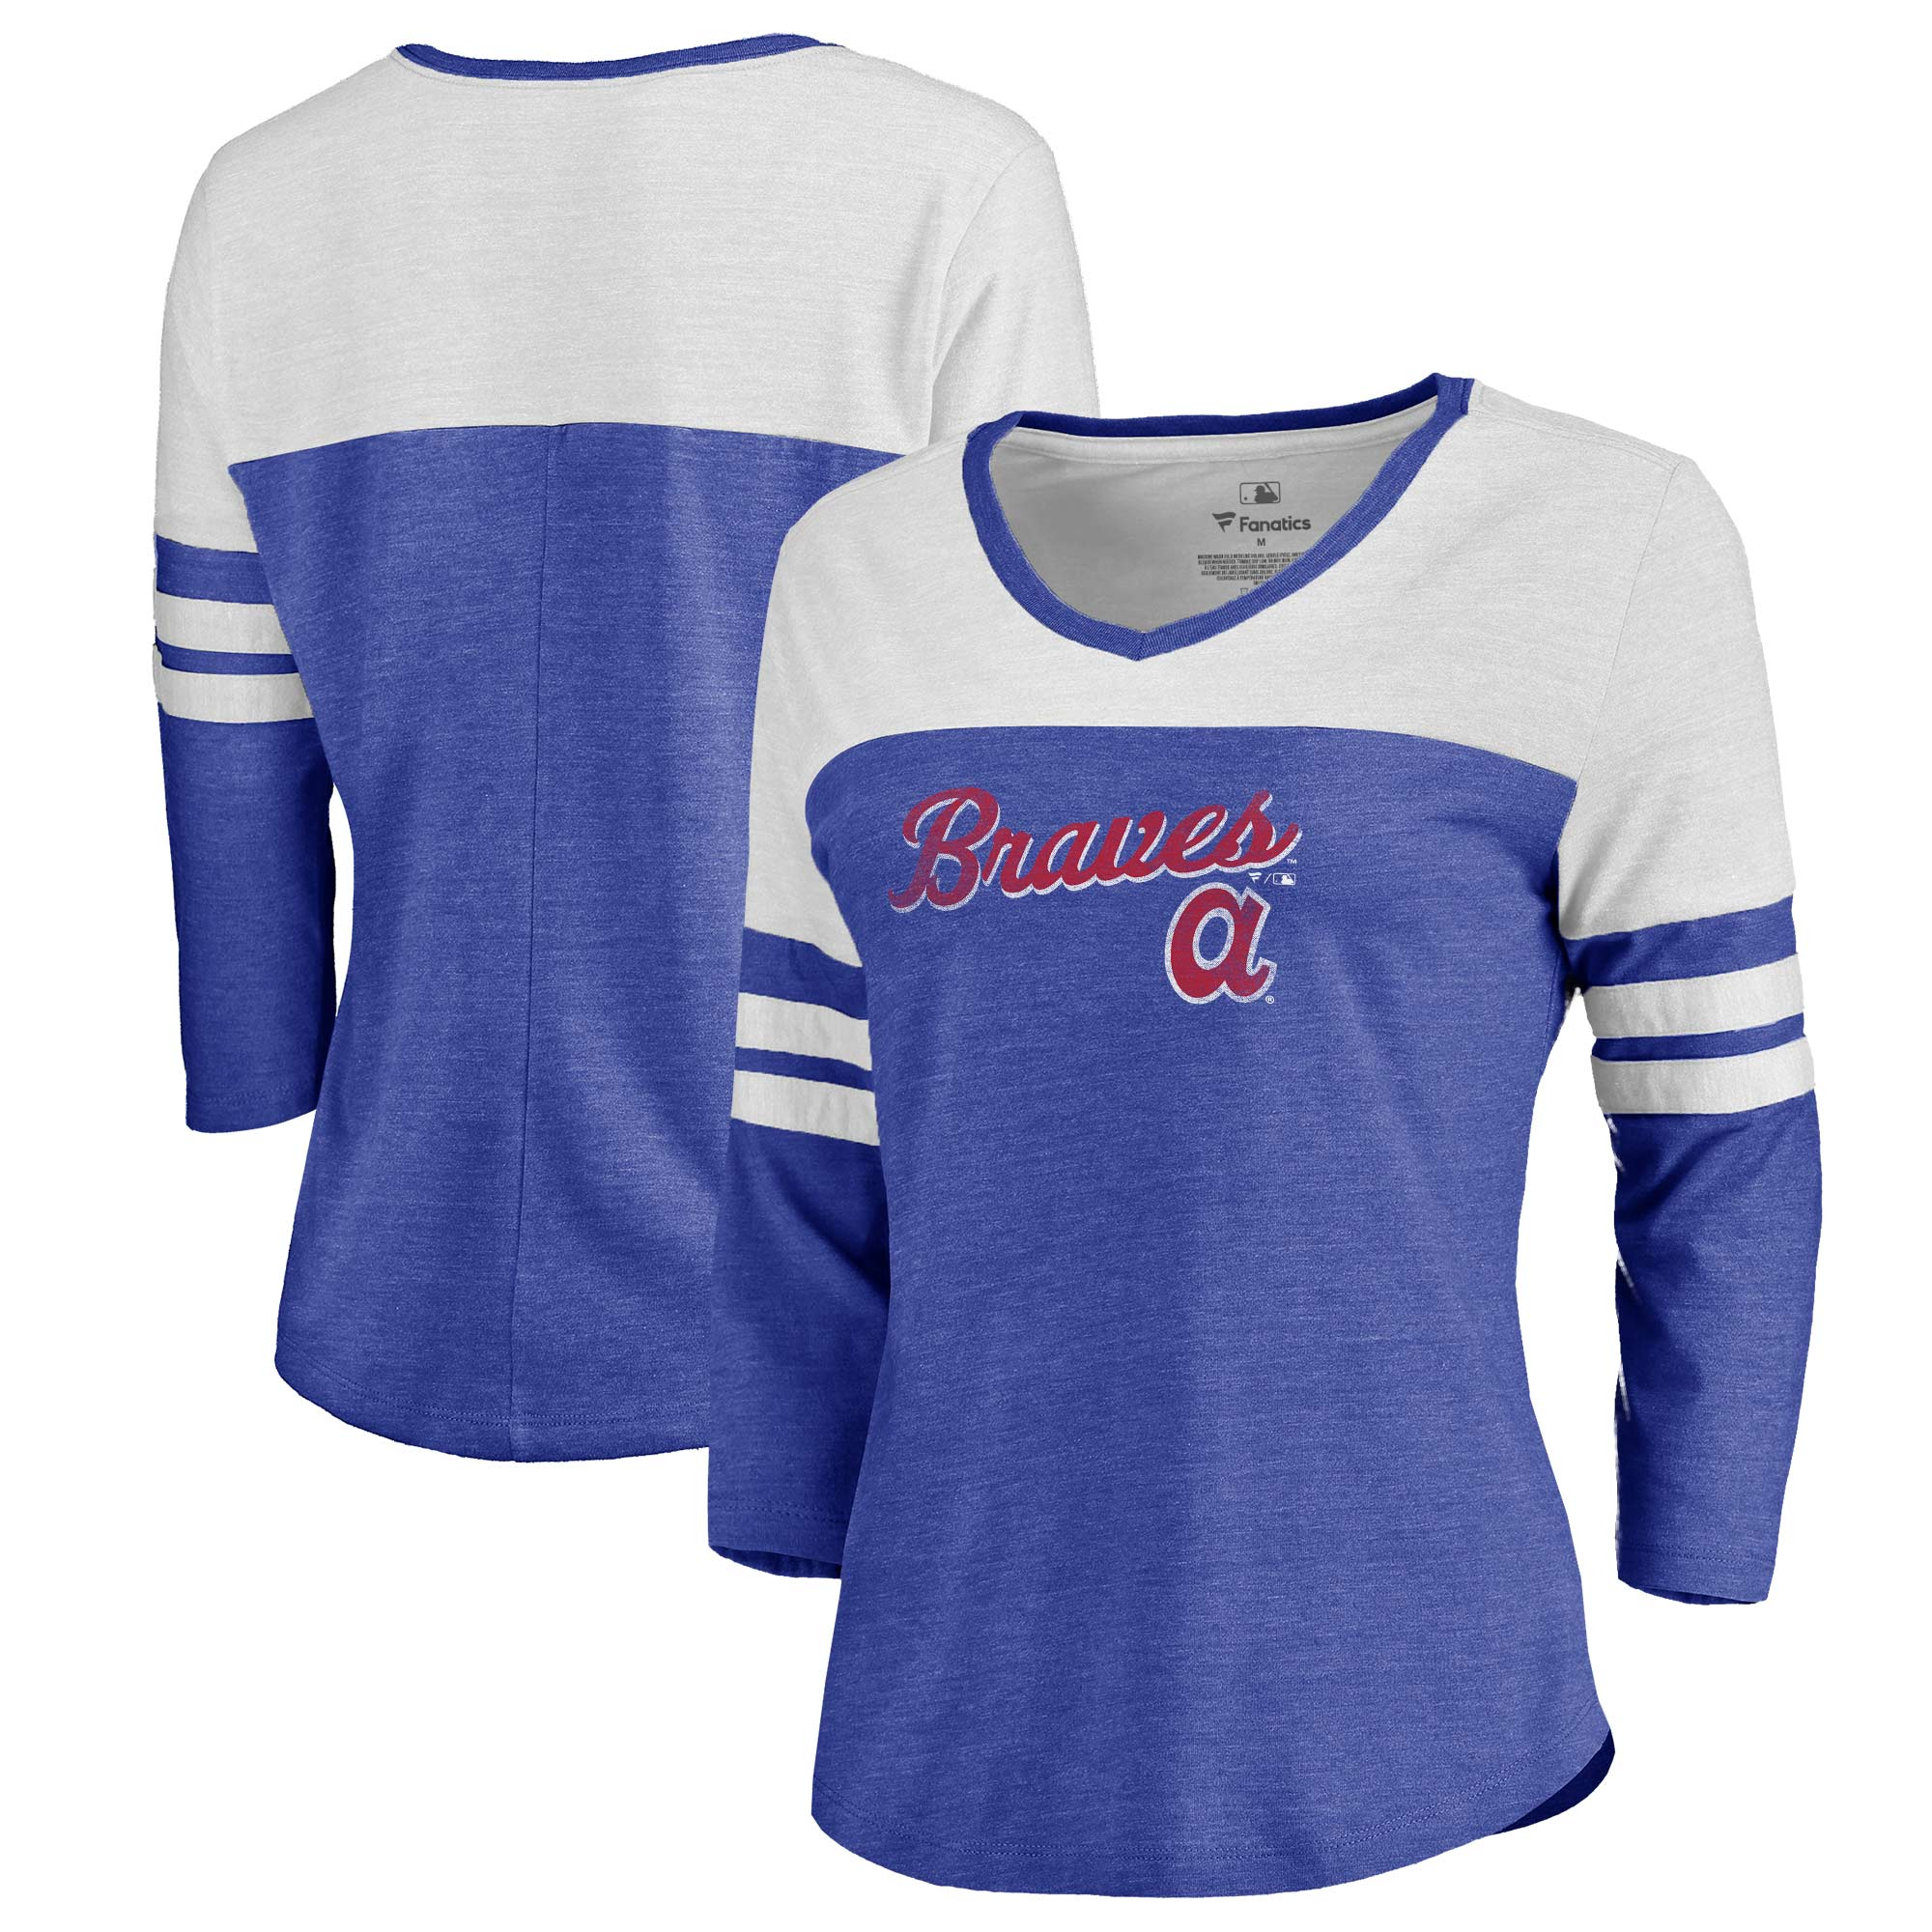 Atlanta Braves Fanatics Branded Women's Rising Script Tri-Blend Raglan V-Neck 3/4-Sleeve T-Shirt - Heathered Royal/White